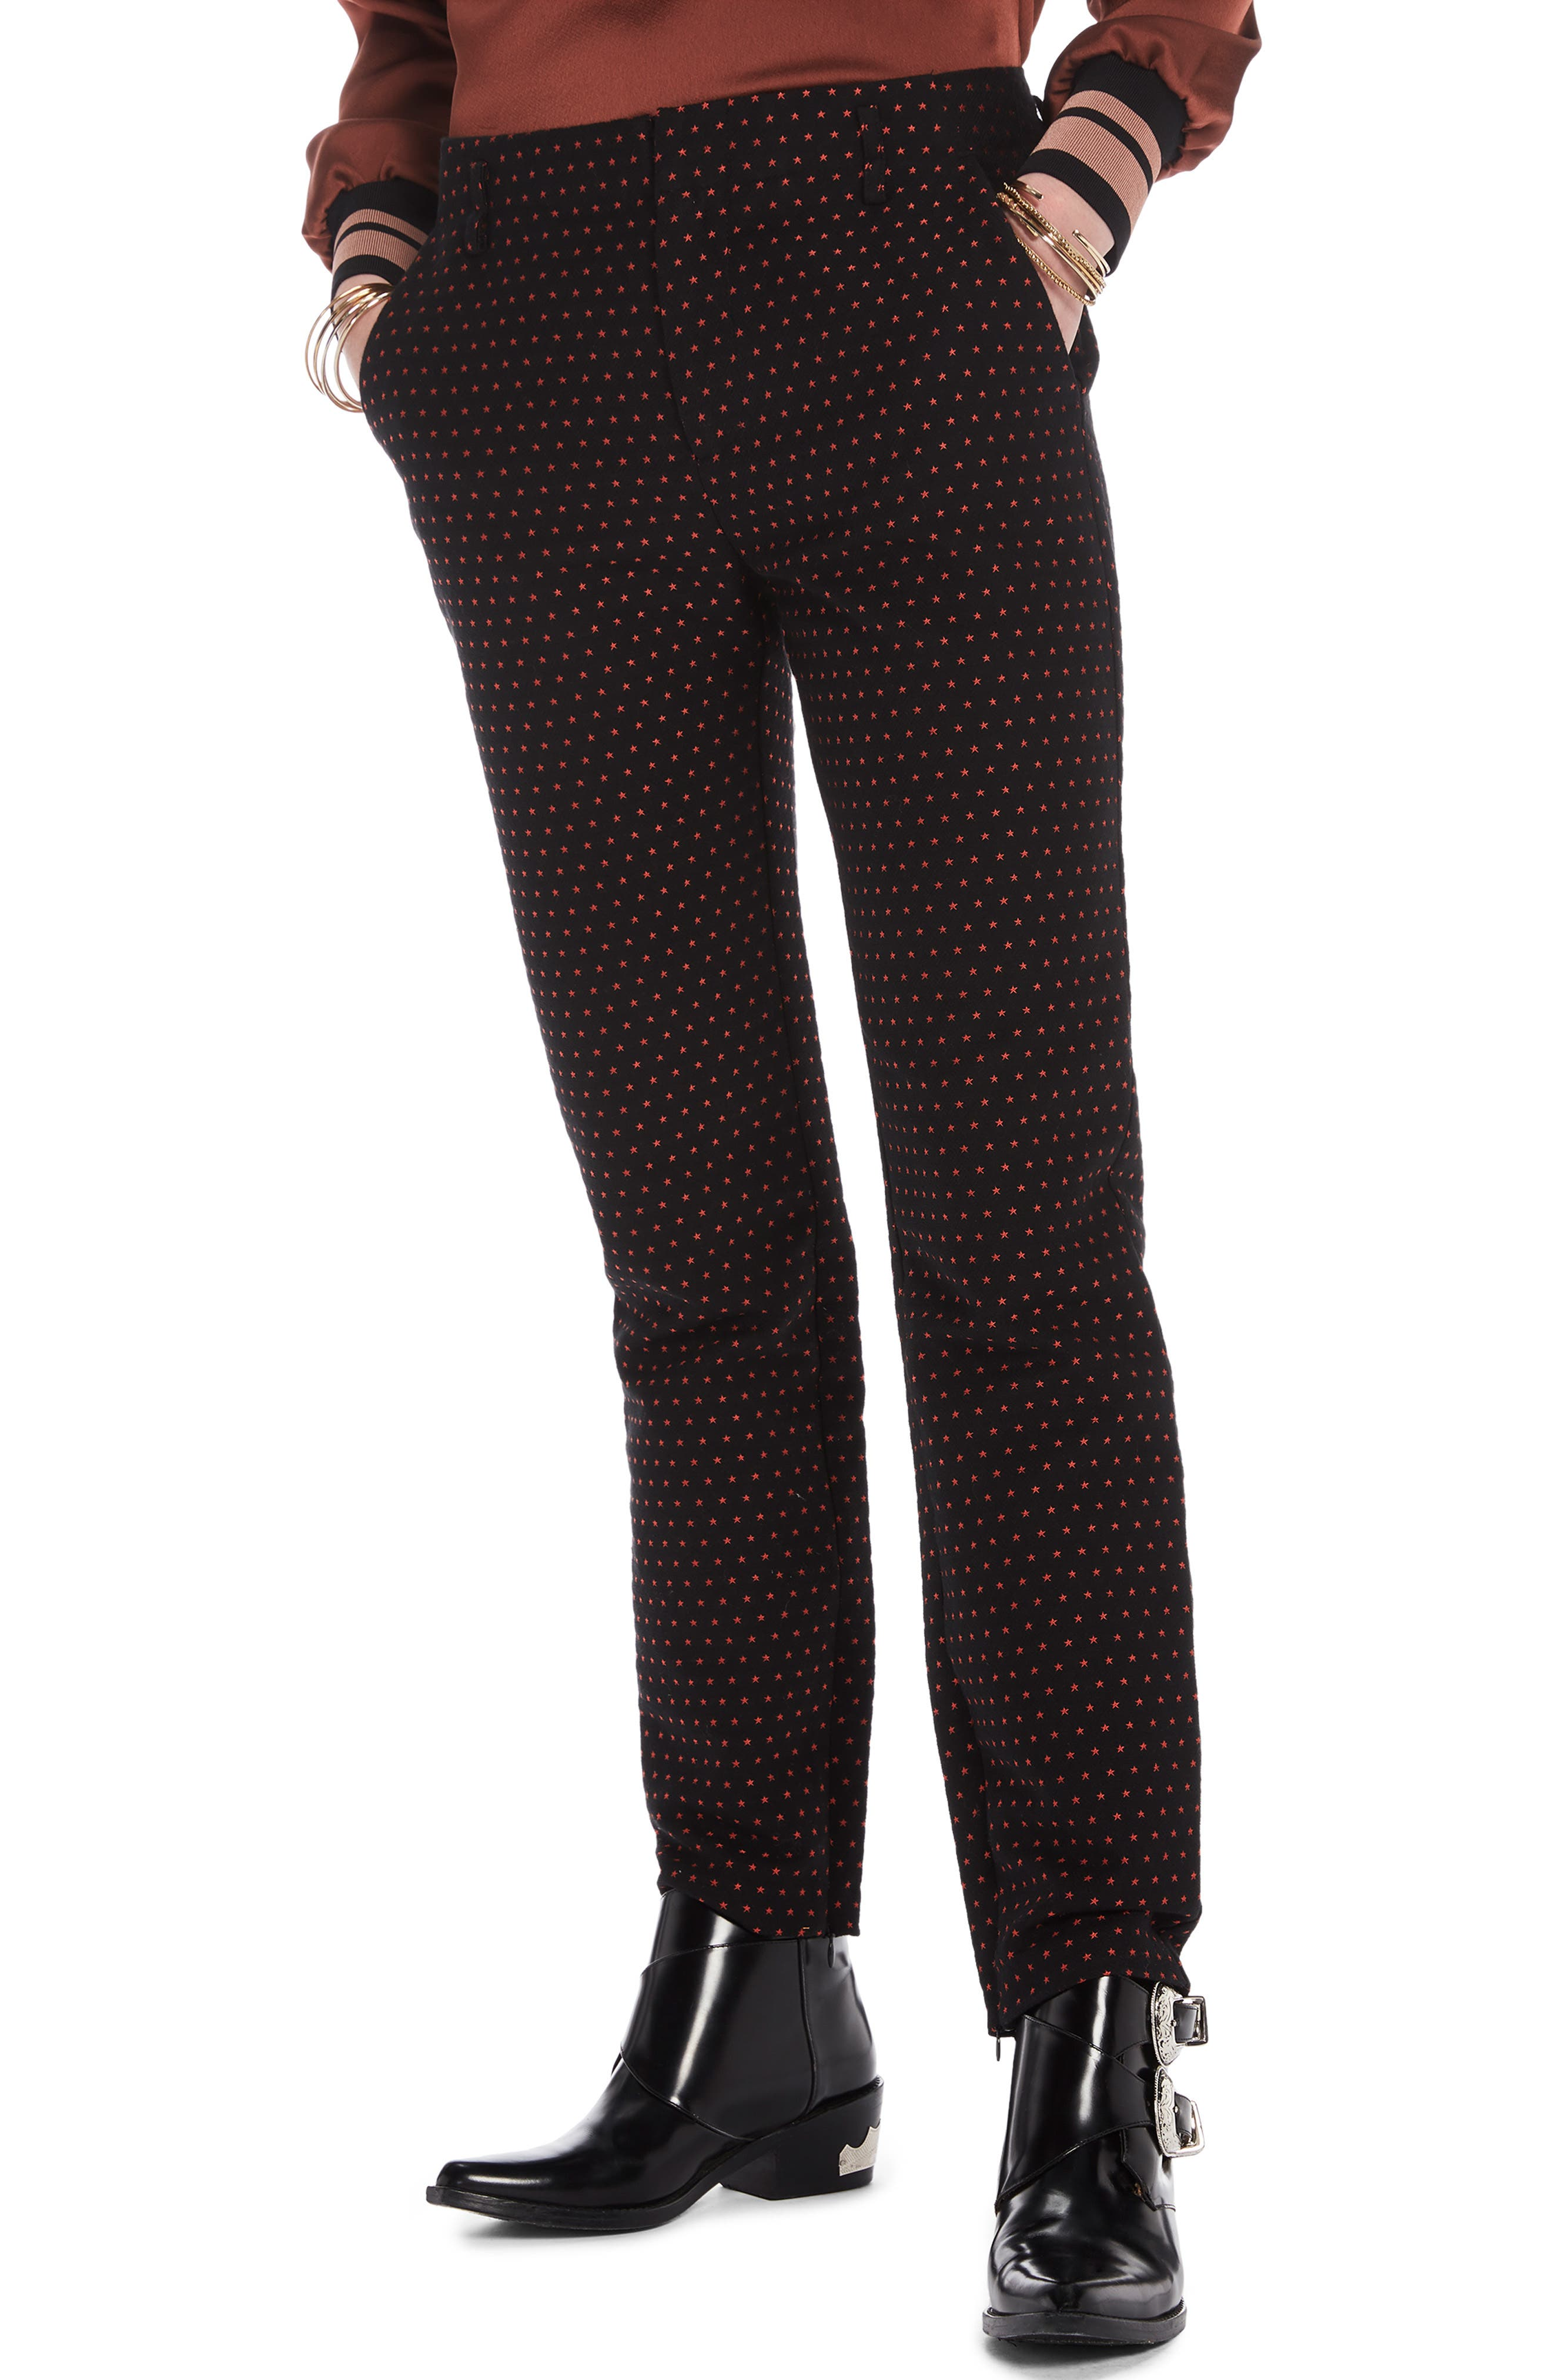 Starry Jacquard Tailored Stretch Pants,                             Main thumbnail 1, color,                             BLACK W/ SMALL STAR PRINT